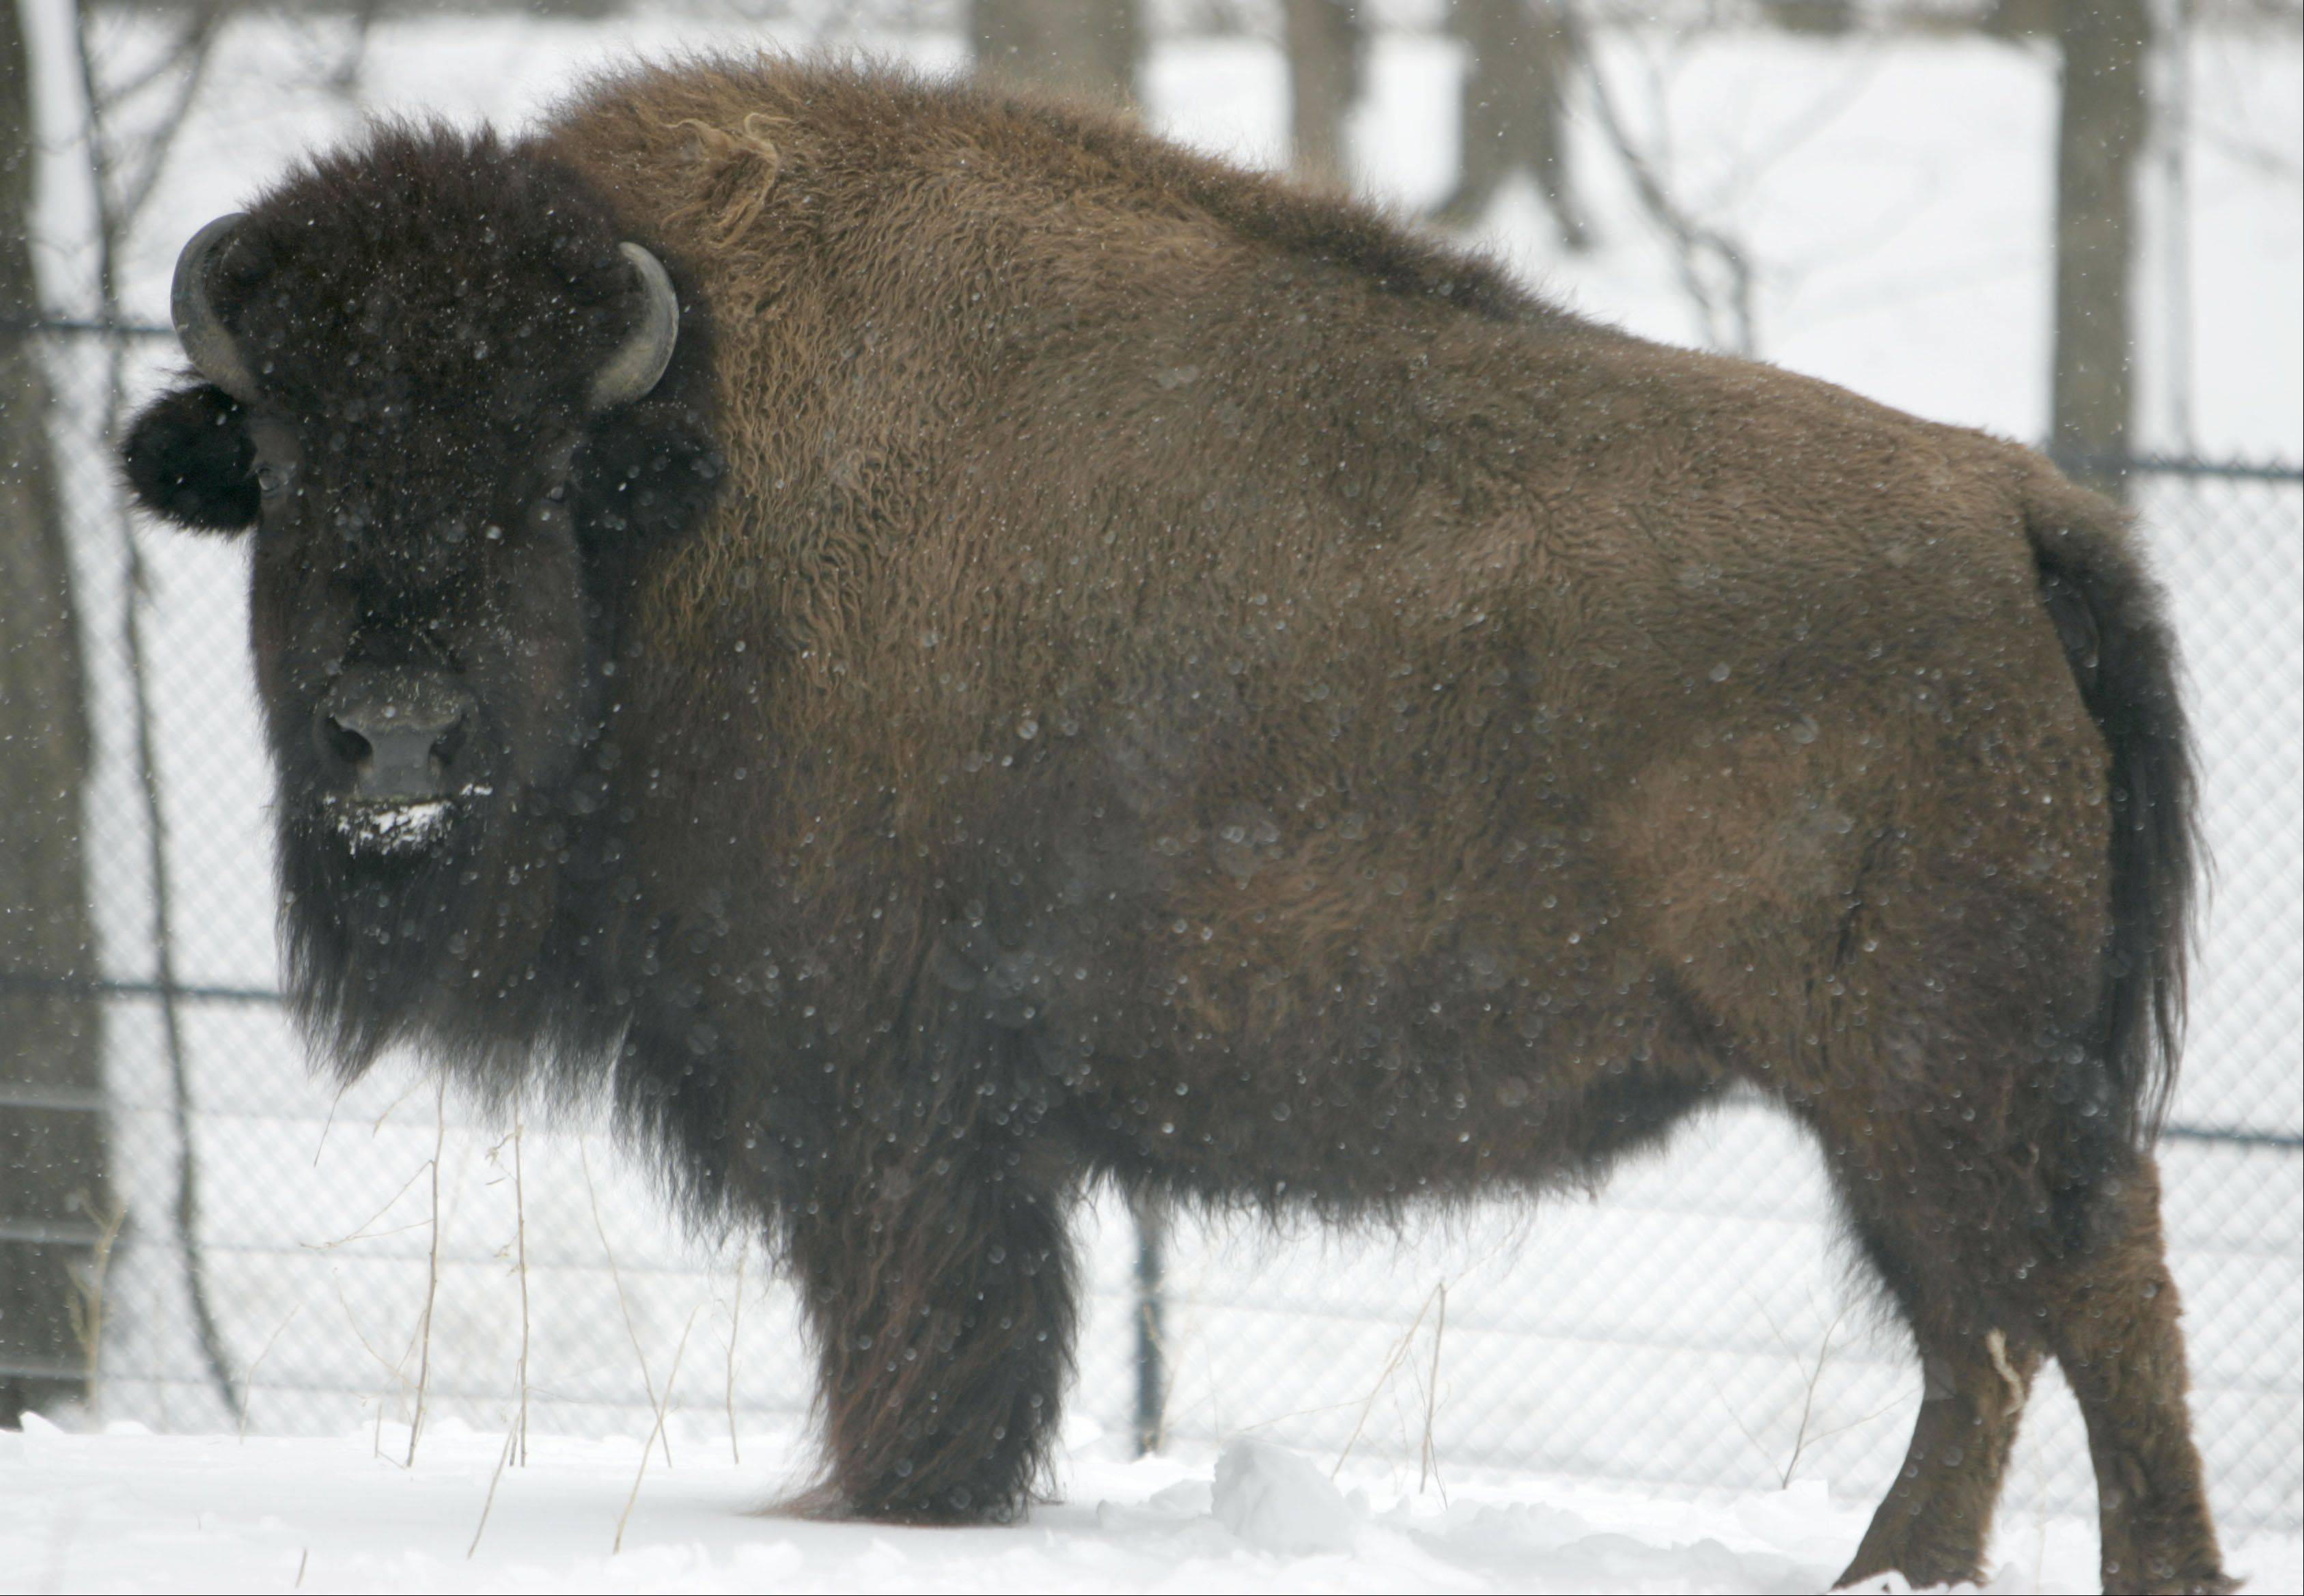 Becky is one of two new bison that arrived Thursday at Lord's Park Zoo in Elgin from Brookfield Zoo. The newcomers are getting along with Pokey, the Elgin zoo's longtime bison who lost her companions in 2010 and 2011.